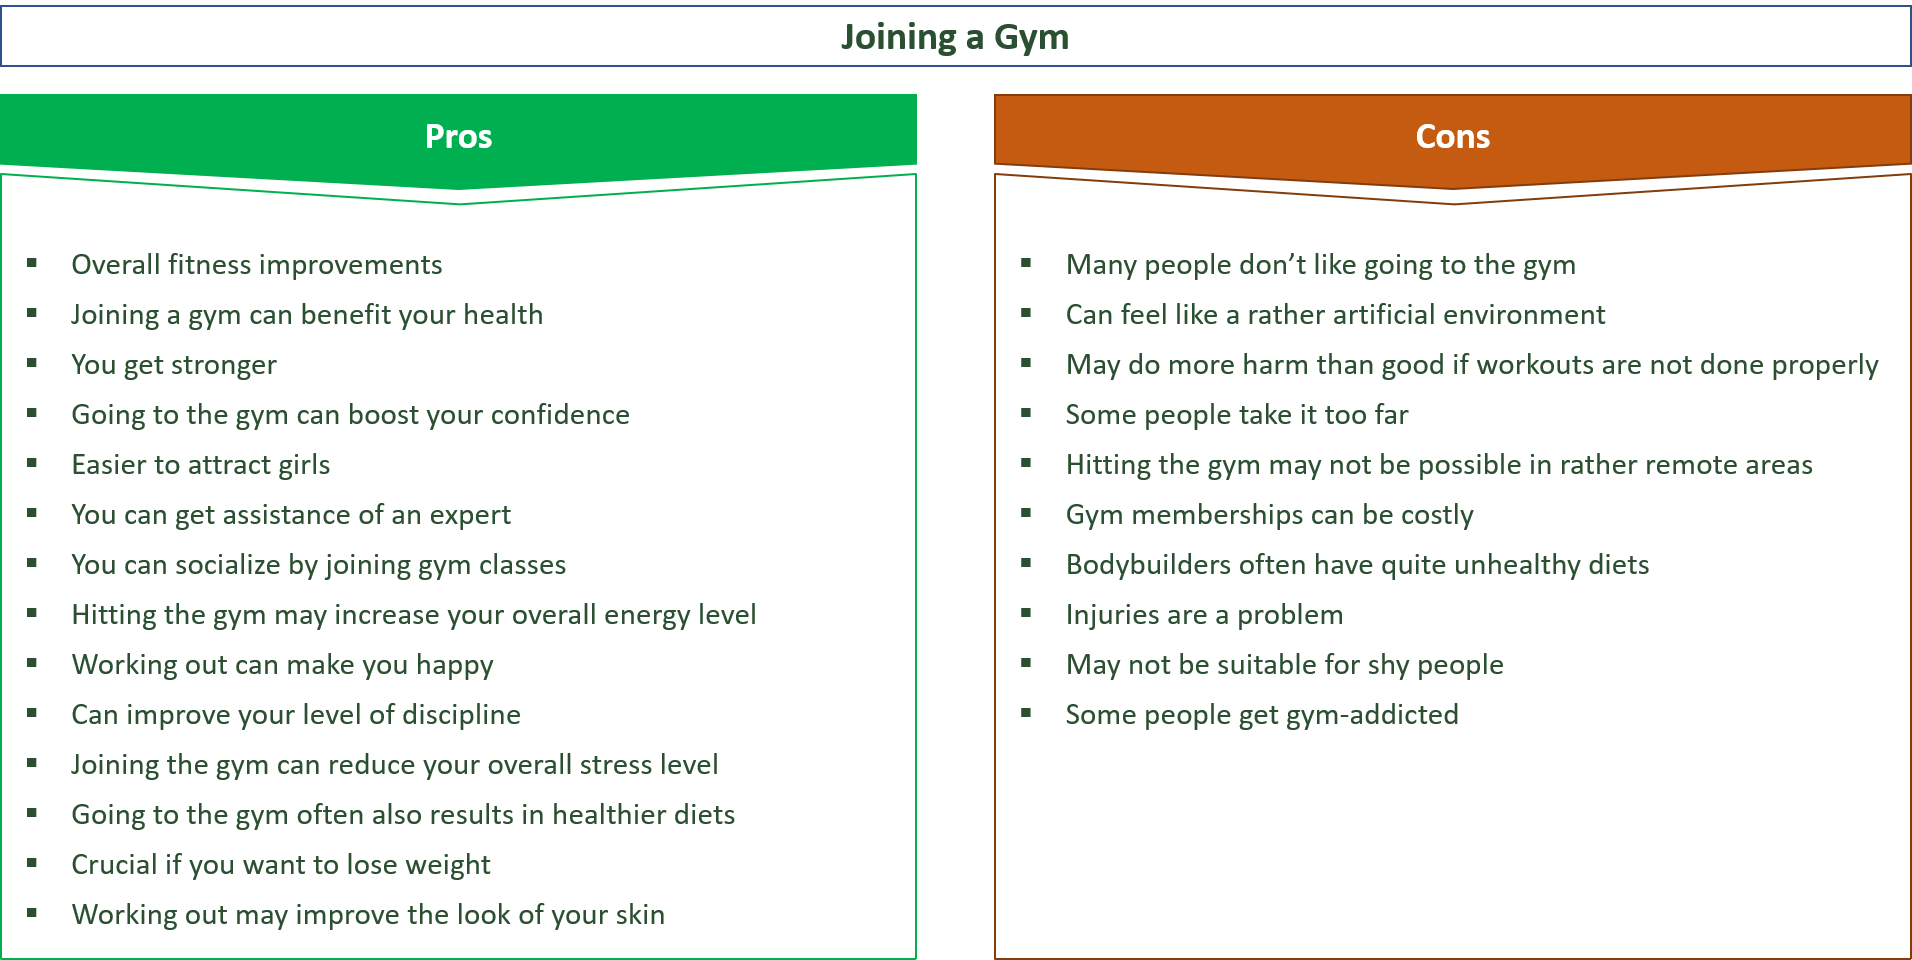 advantages and disadvantages of joining a gym